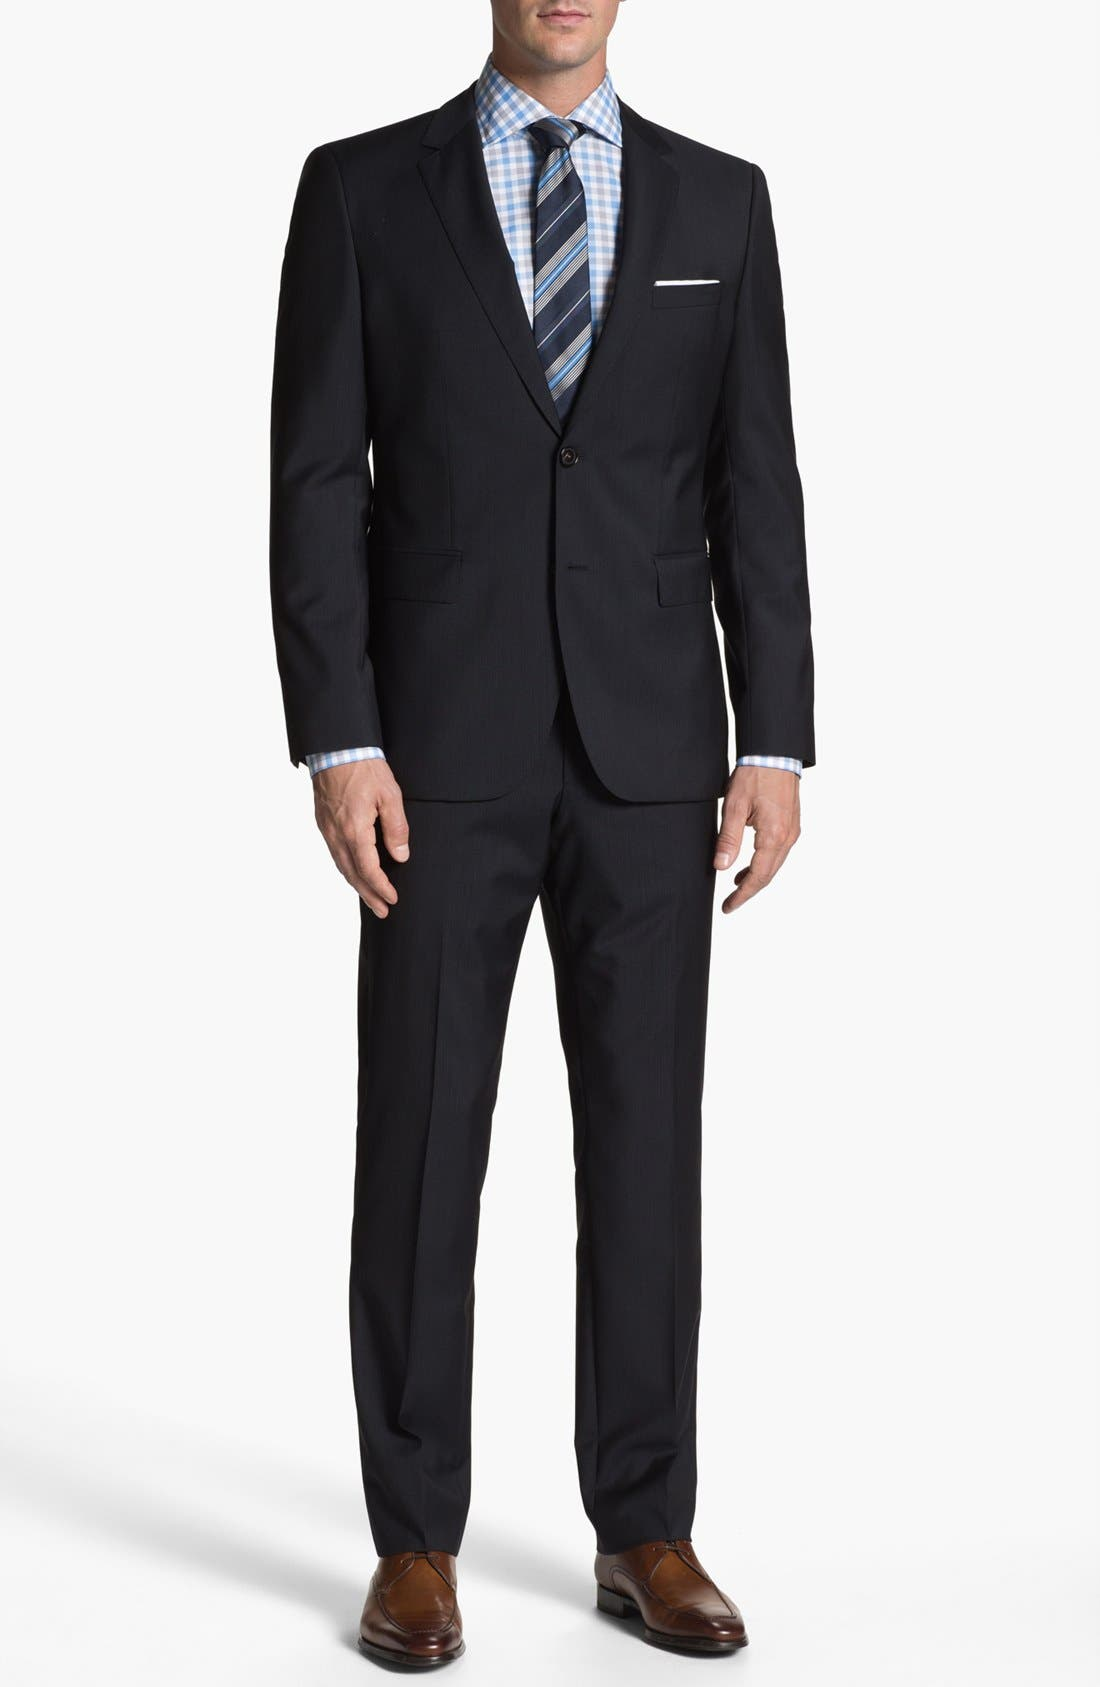 Alternate Image 1 Selected - BOSS HUGO BOSS 'James/Sharp' Trim Fit Stripe Suit